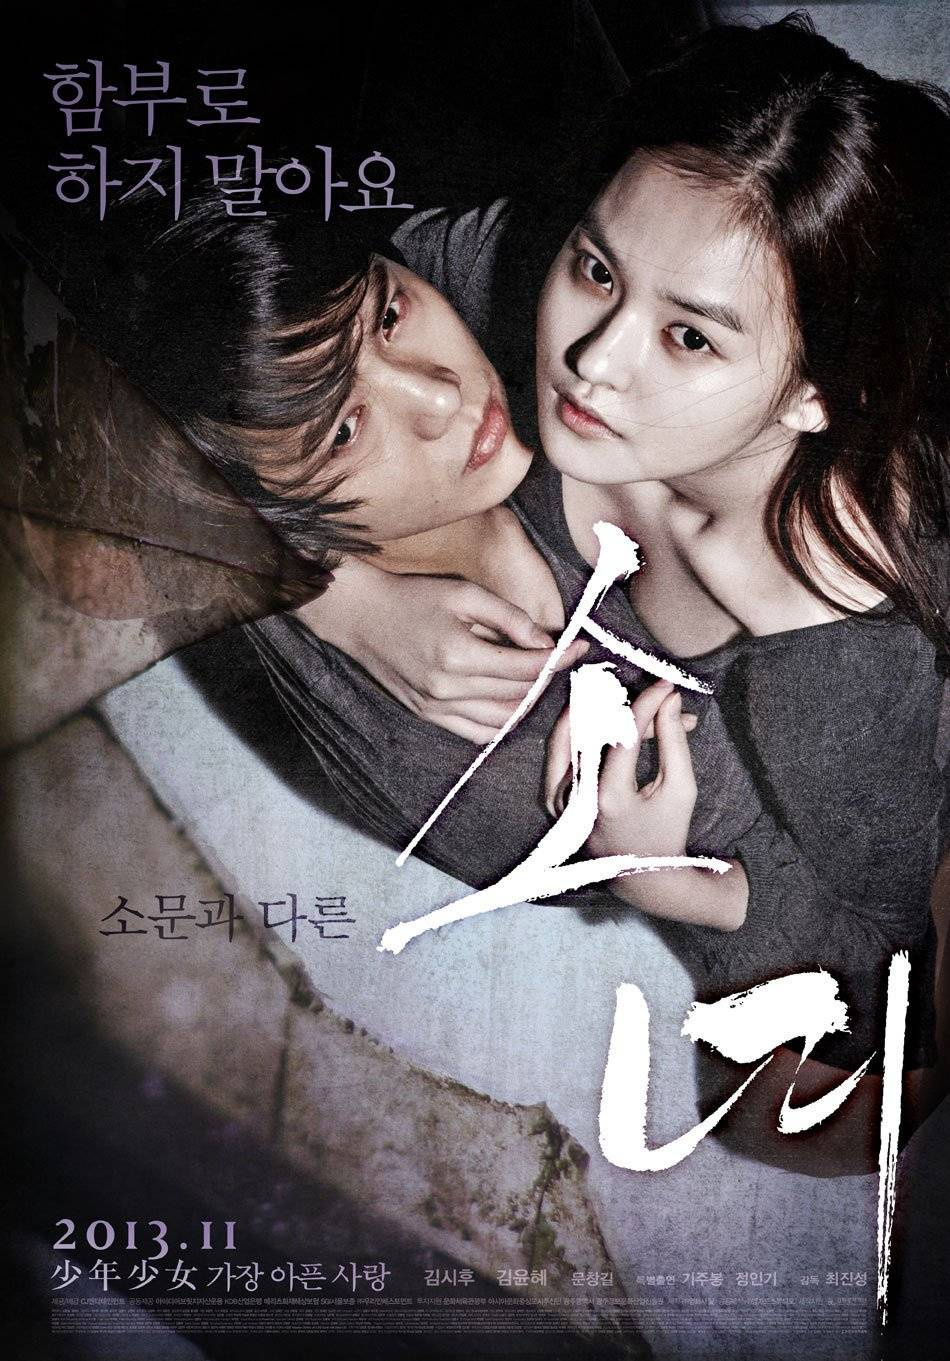 Steel Cold Winter (Korean Movie - 2013) - 소녀 @ HanCinema ...